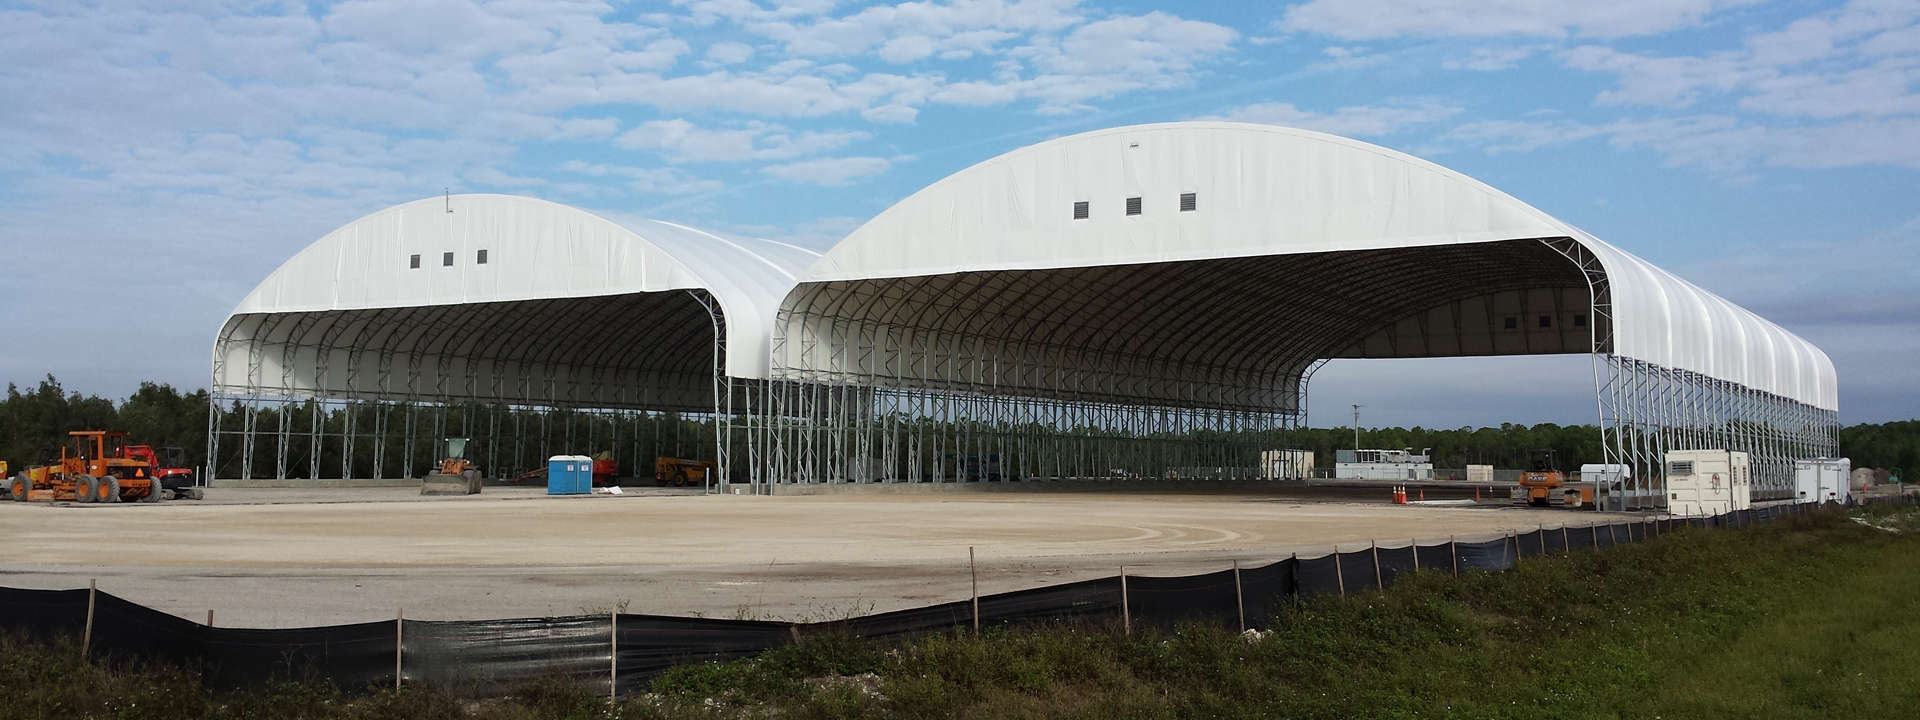 Fabric Structure (article)